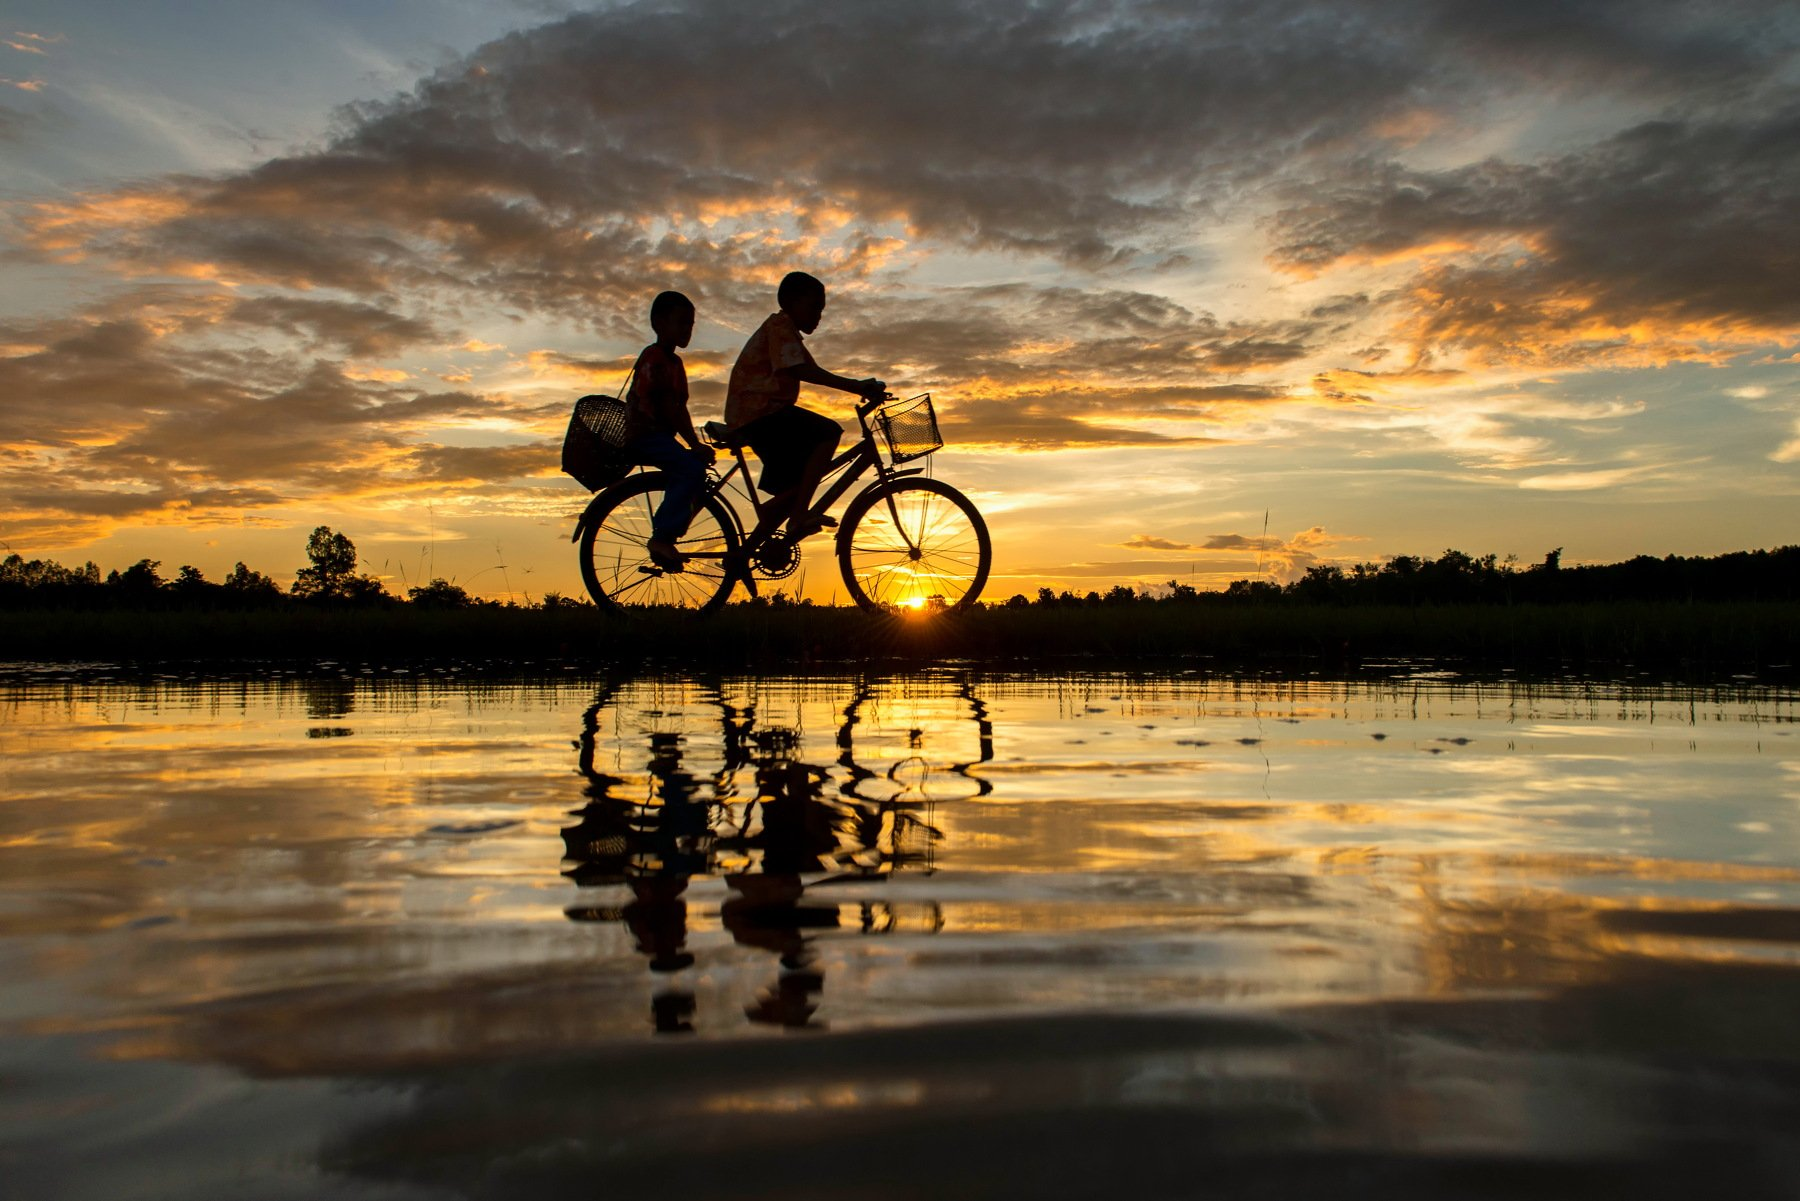 Cycling, Bicycle, Scenics, Sunset, Reflection, Lake, People, Two People, Nature, Silhouette, Thailand, Atmospheric Mood, Beauty In Nature, Cloud - Sky, Color Image, Horizontal, On The Move, Outdoors, Photography, Sky, Sunlight, Togetherness, Transportatio, sarawut intarob